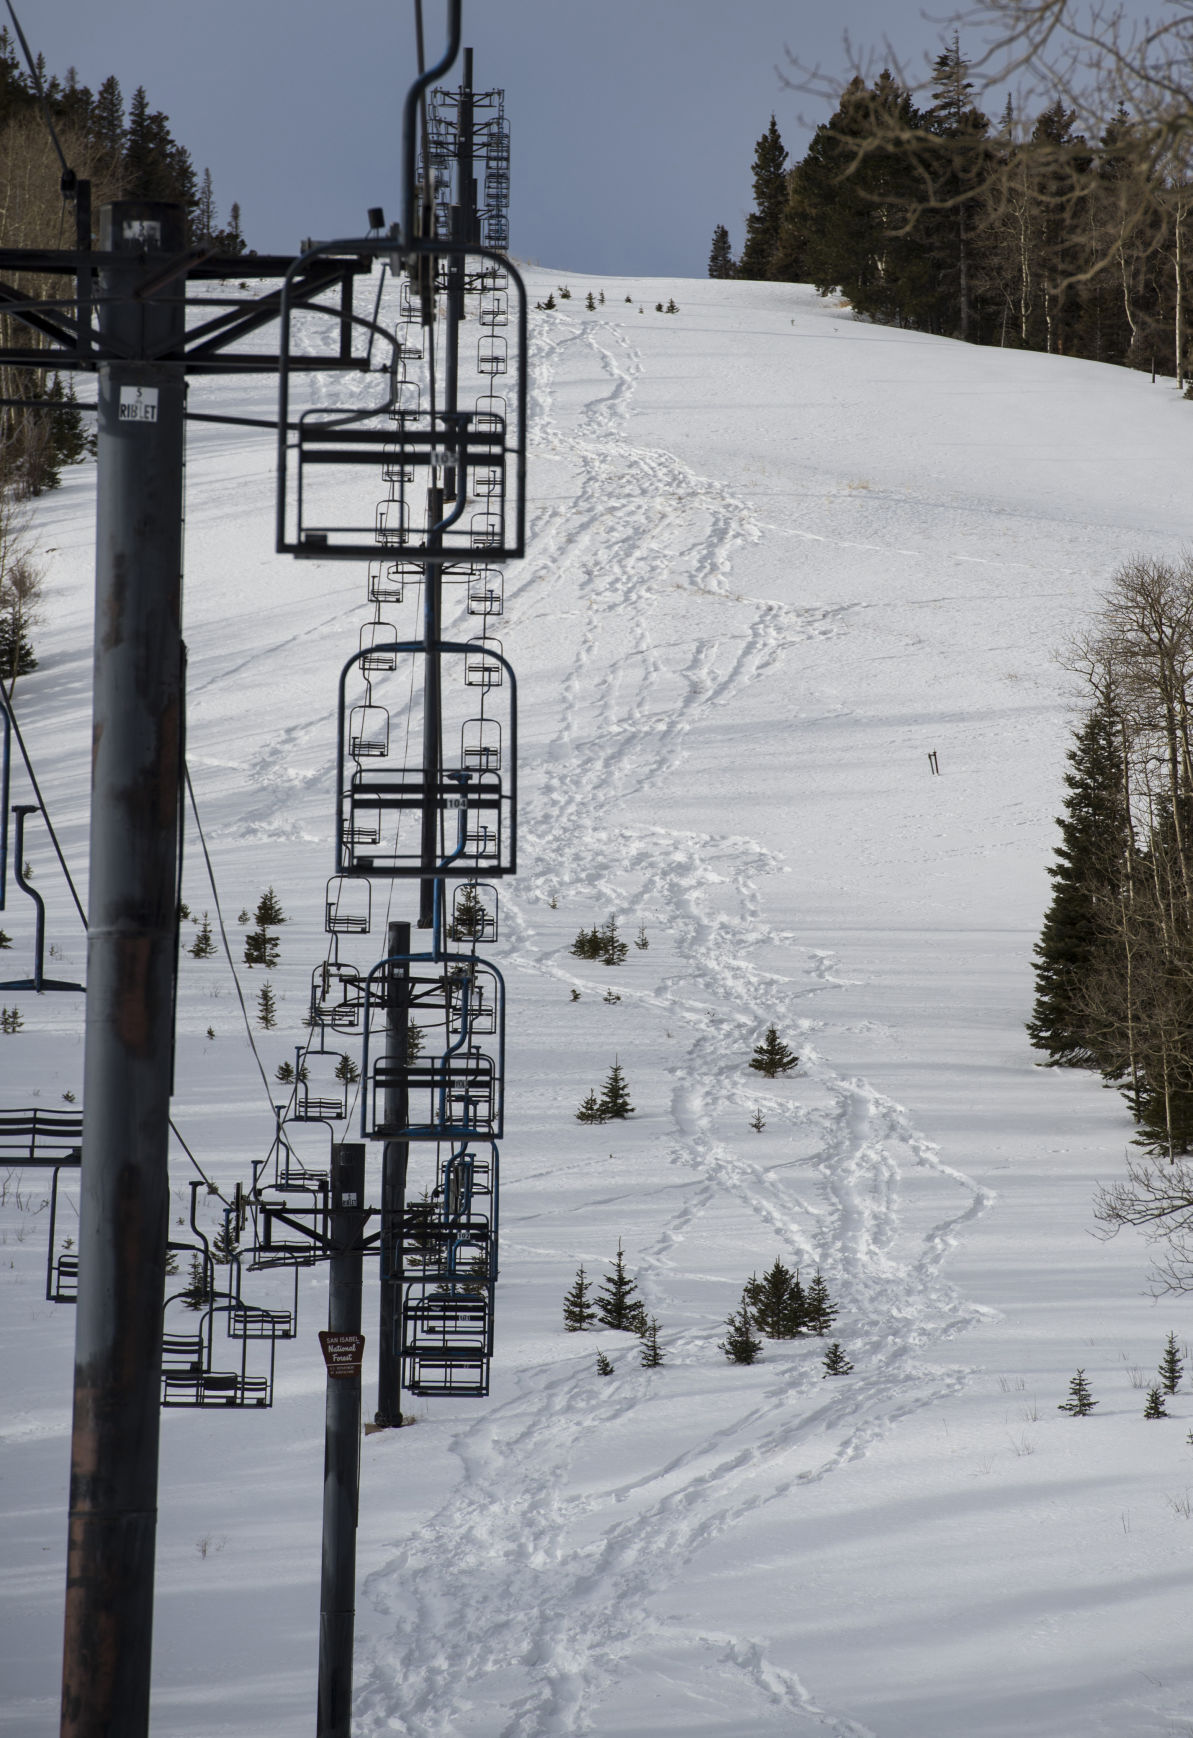 abandoned ski areas in colorado continue to leave their mark decades